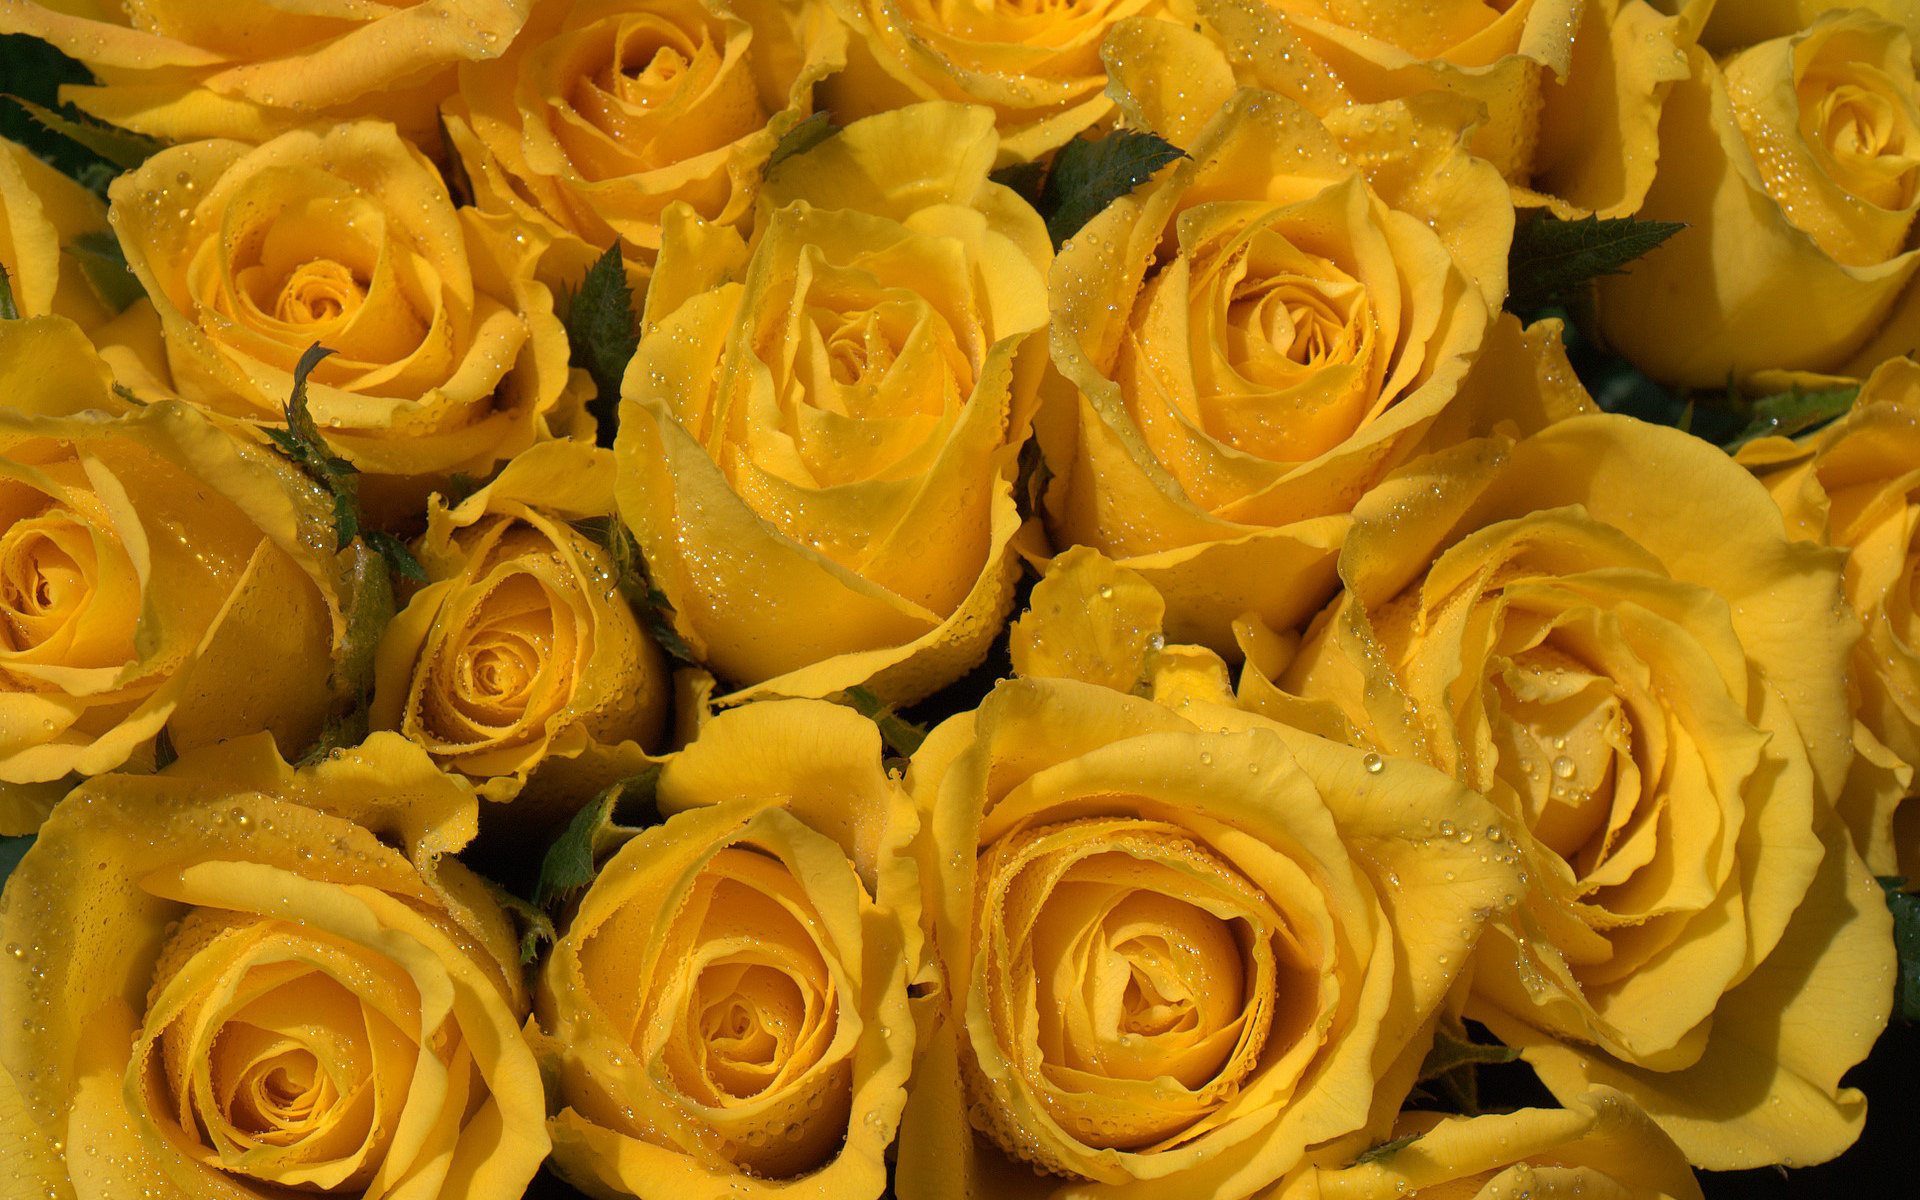 wallpaper of yellow roses - photo #37